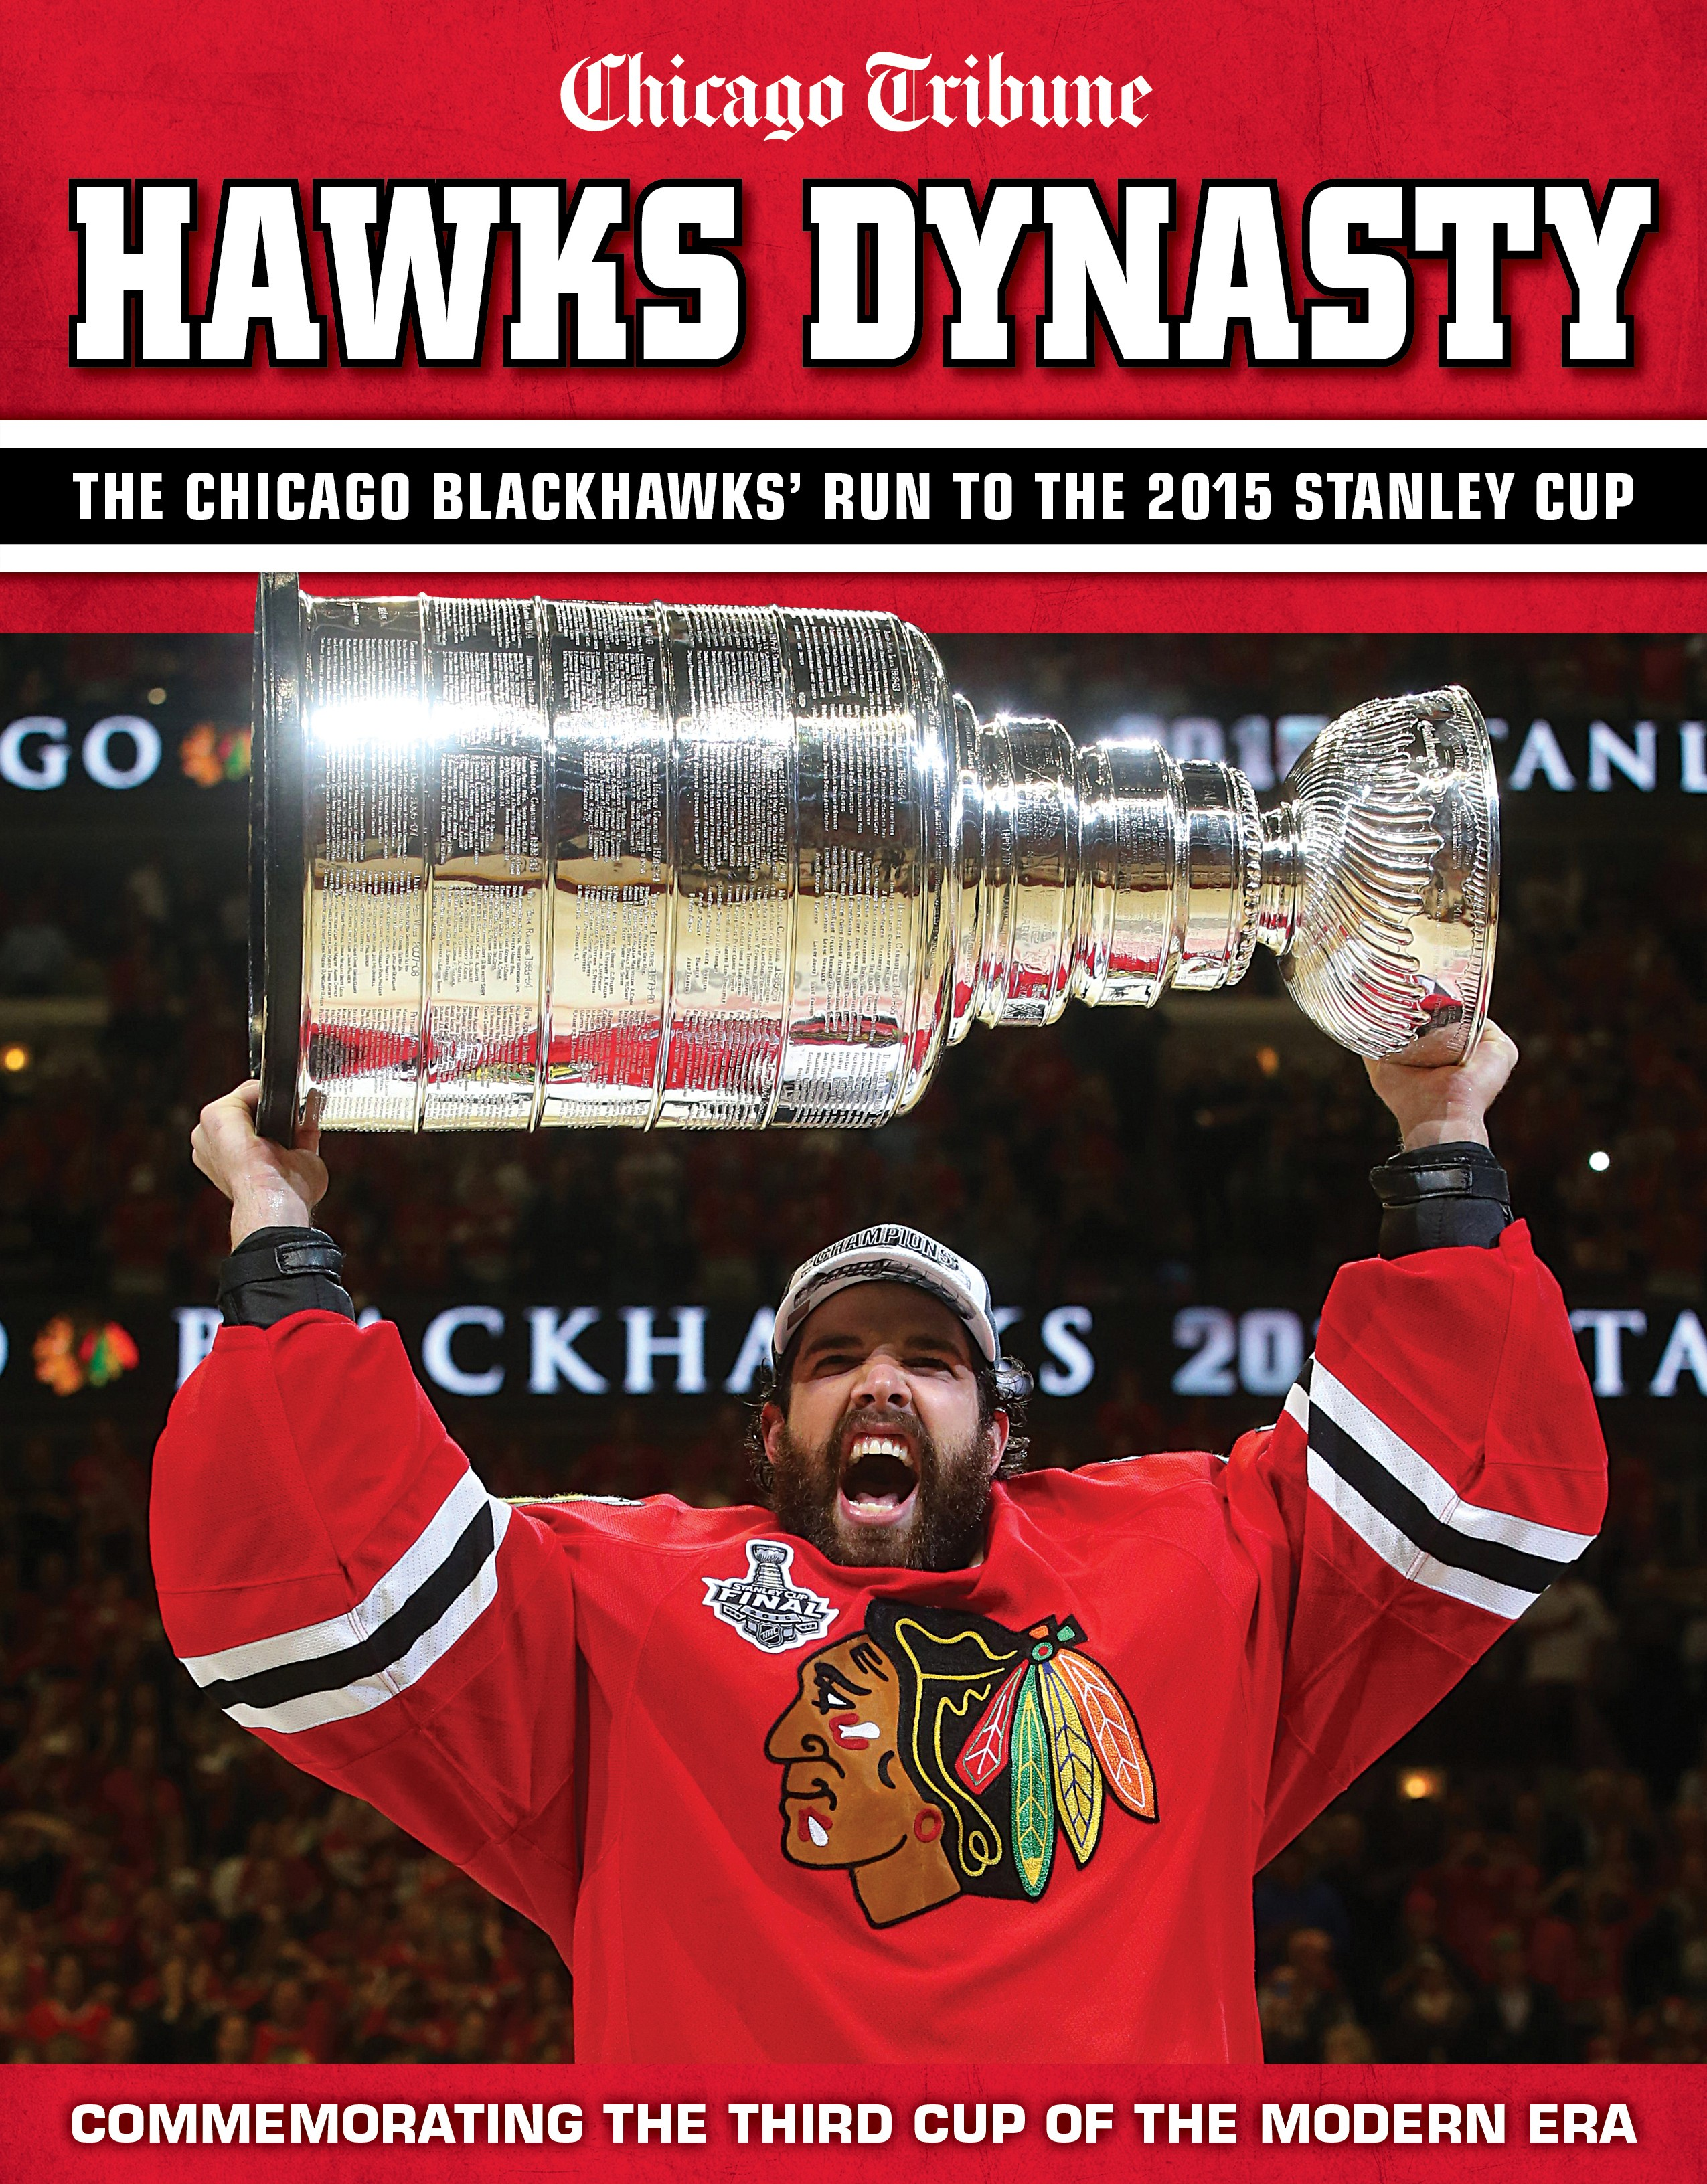 Hawks Dynasty The Chicago Blackhawks Run to the 2015 Stanley Cup 2550x3263